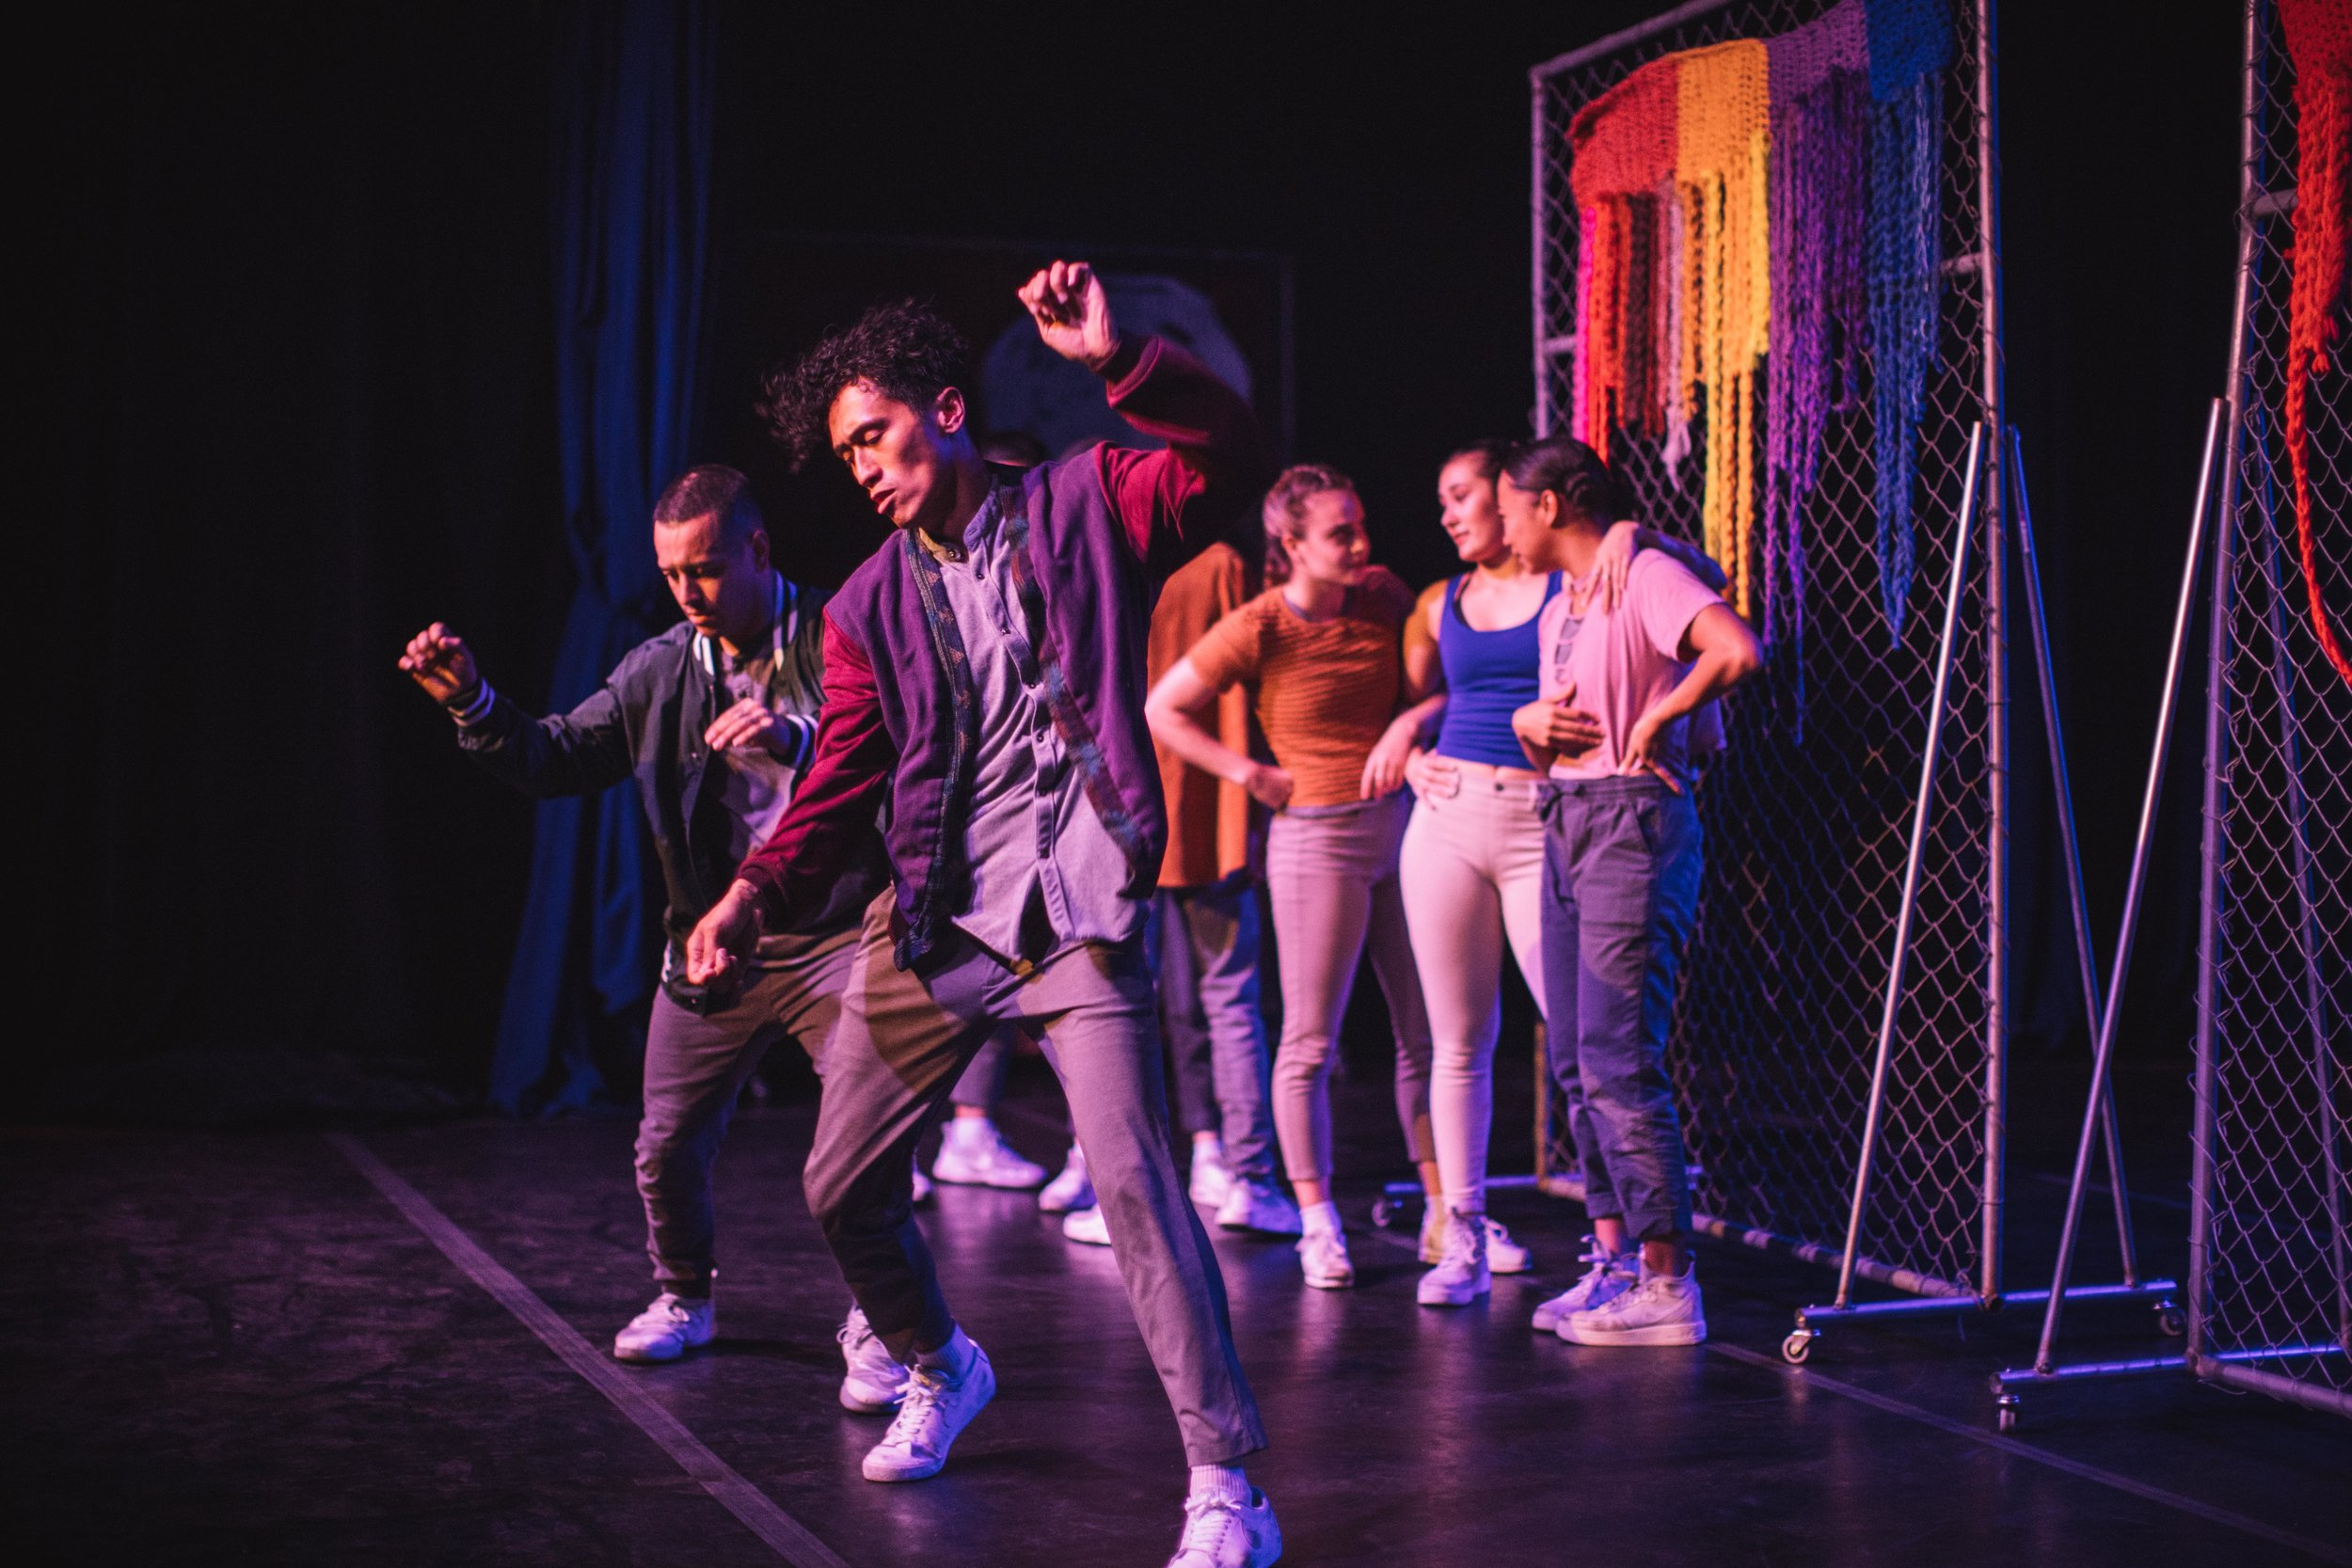 CASTING - Are you a dancer interested in joining the cast? Please follow this link to submit a casting application including your resume, photos, and performance videos. The current round of applications for the New York City Off-Broadway run ends on 10/16/19.